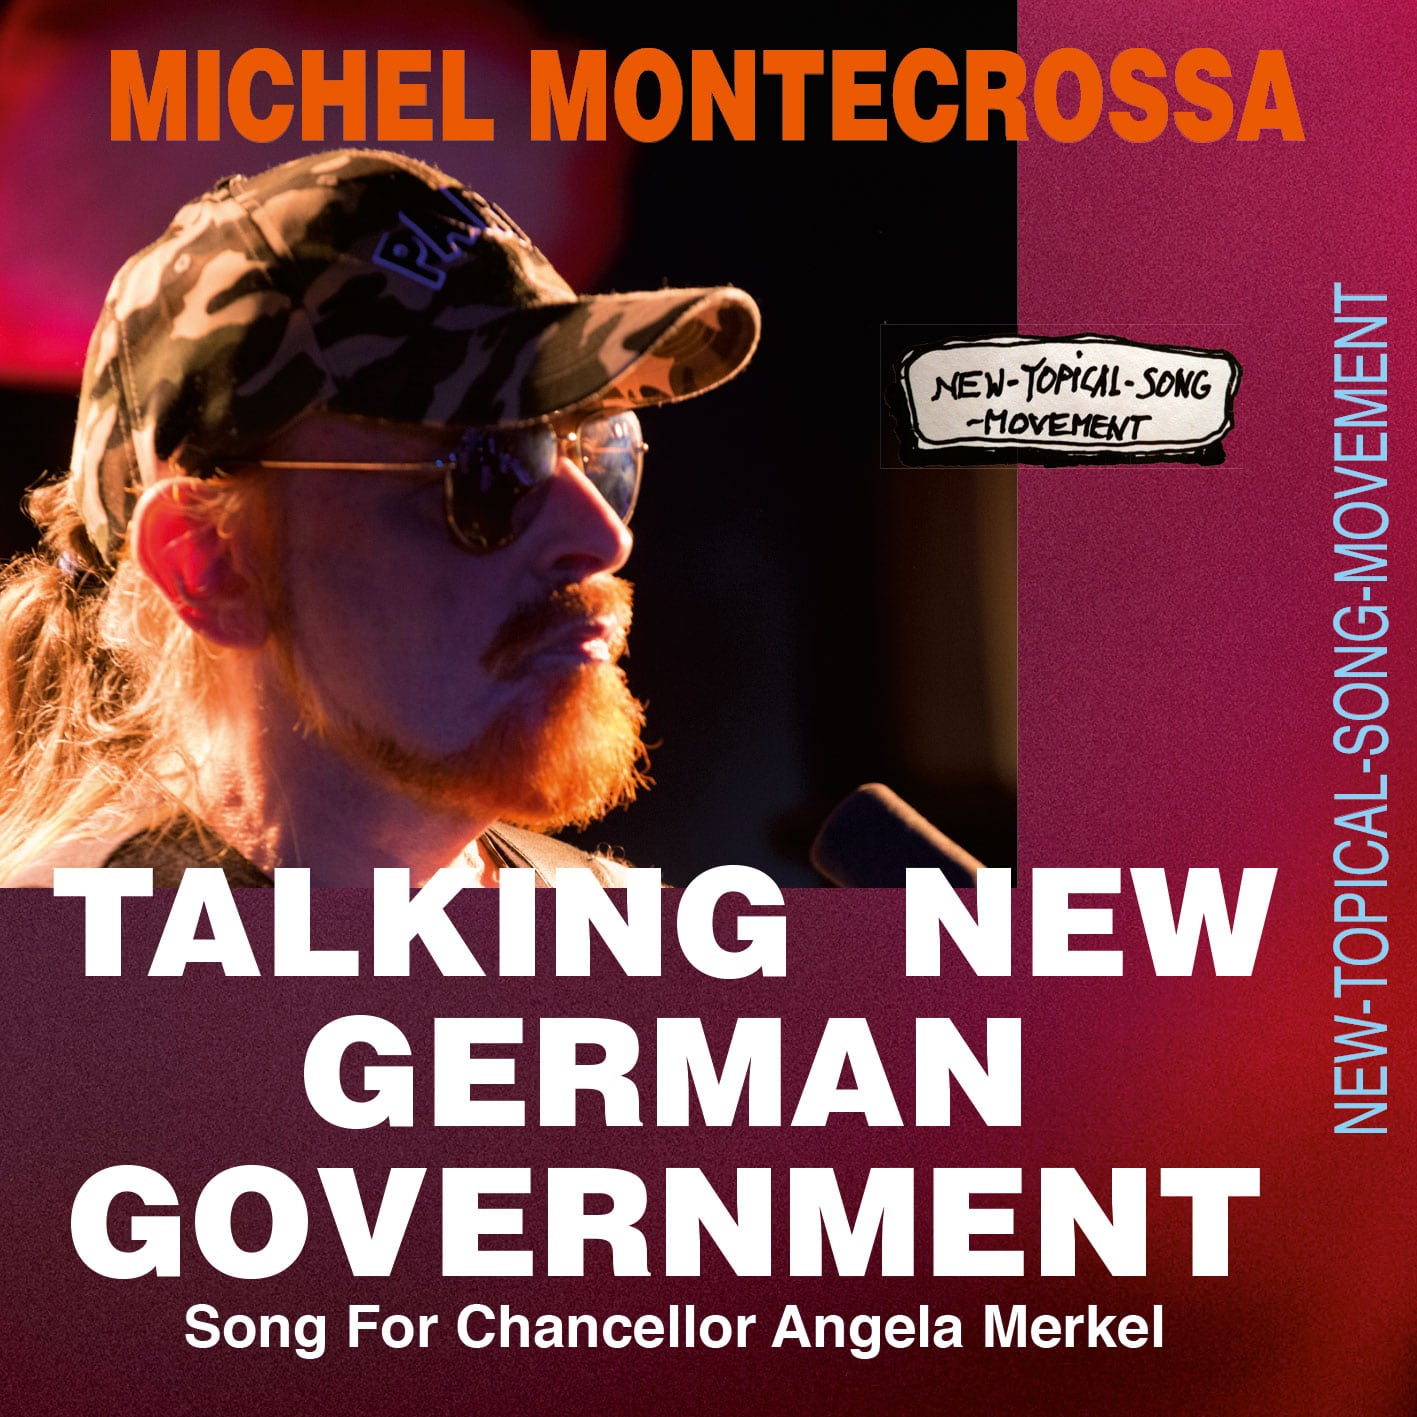 Talking New German Government